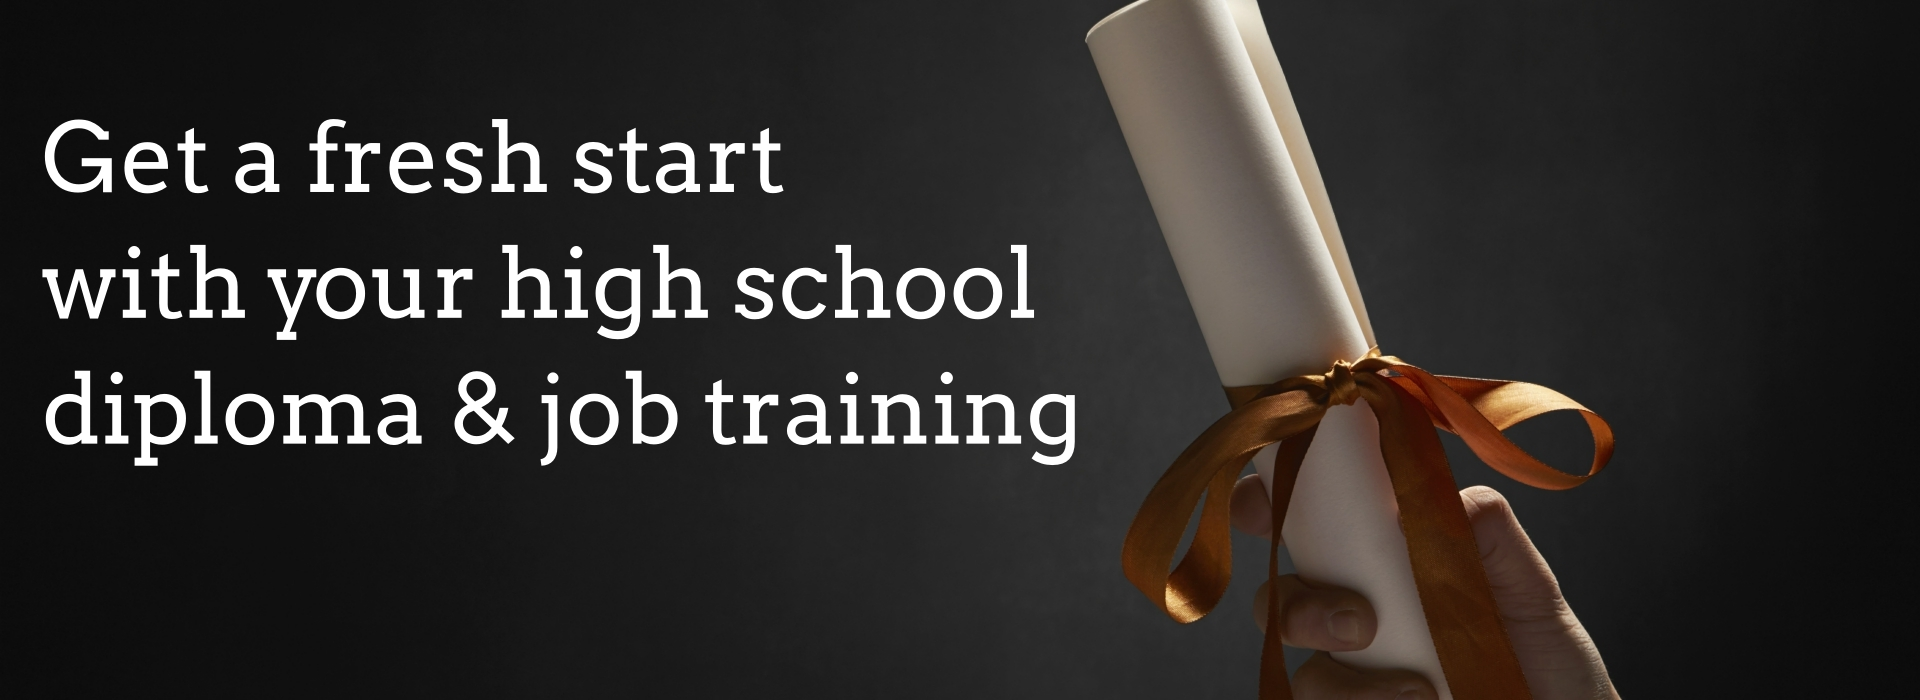 Get a fresh start with your high school diploma & job training